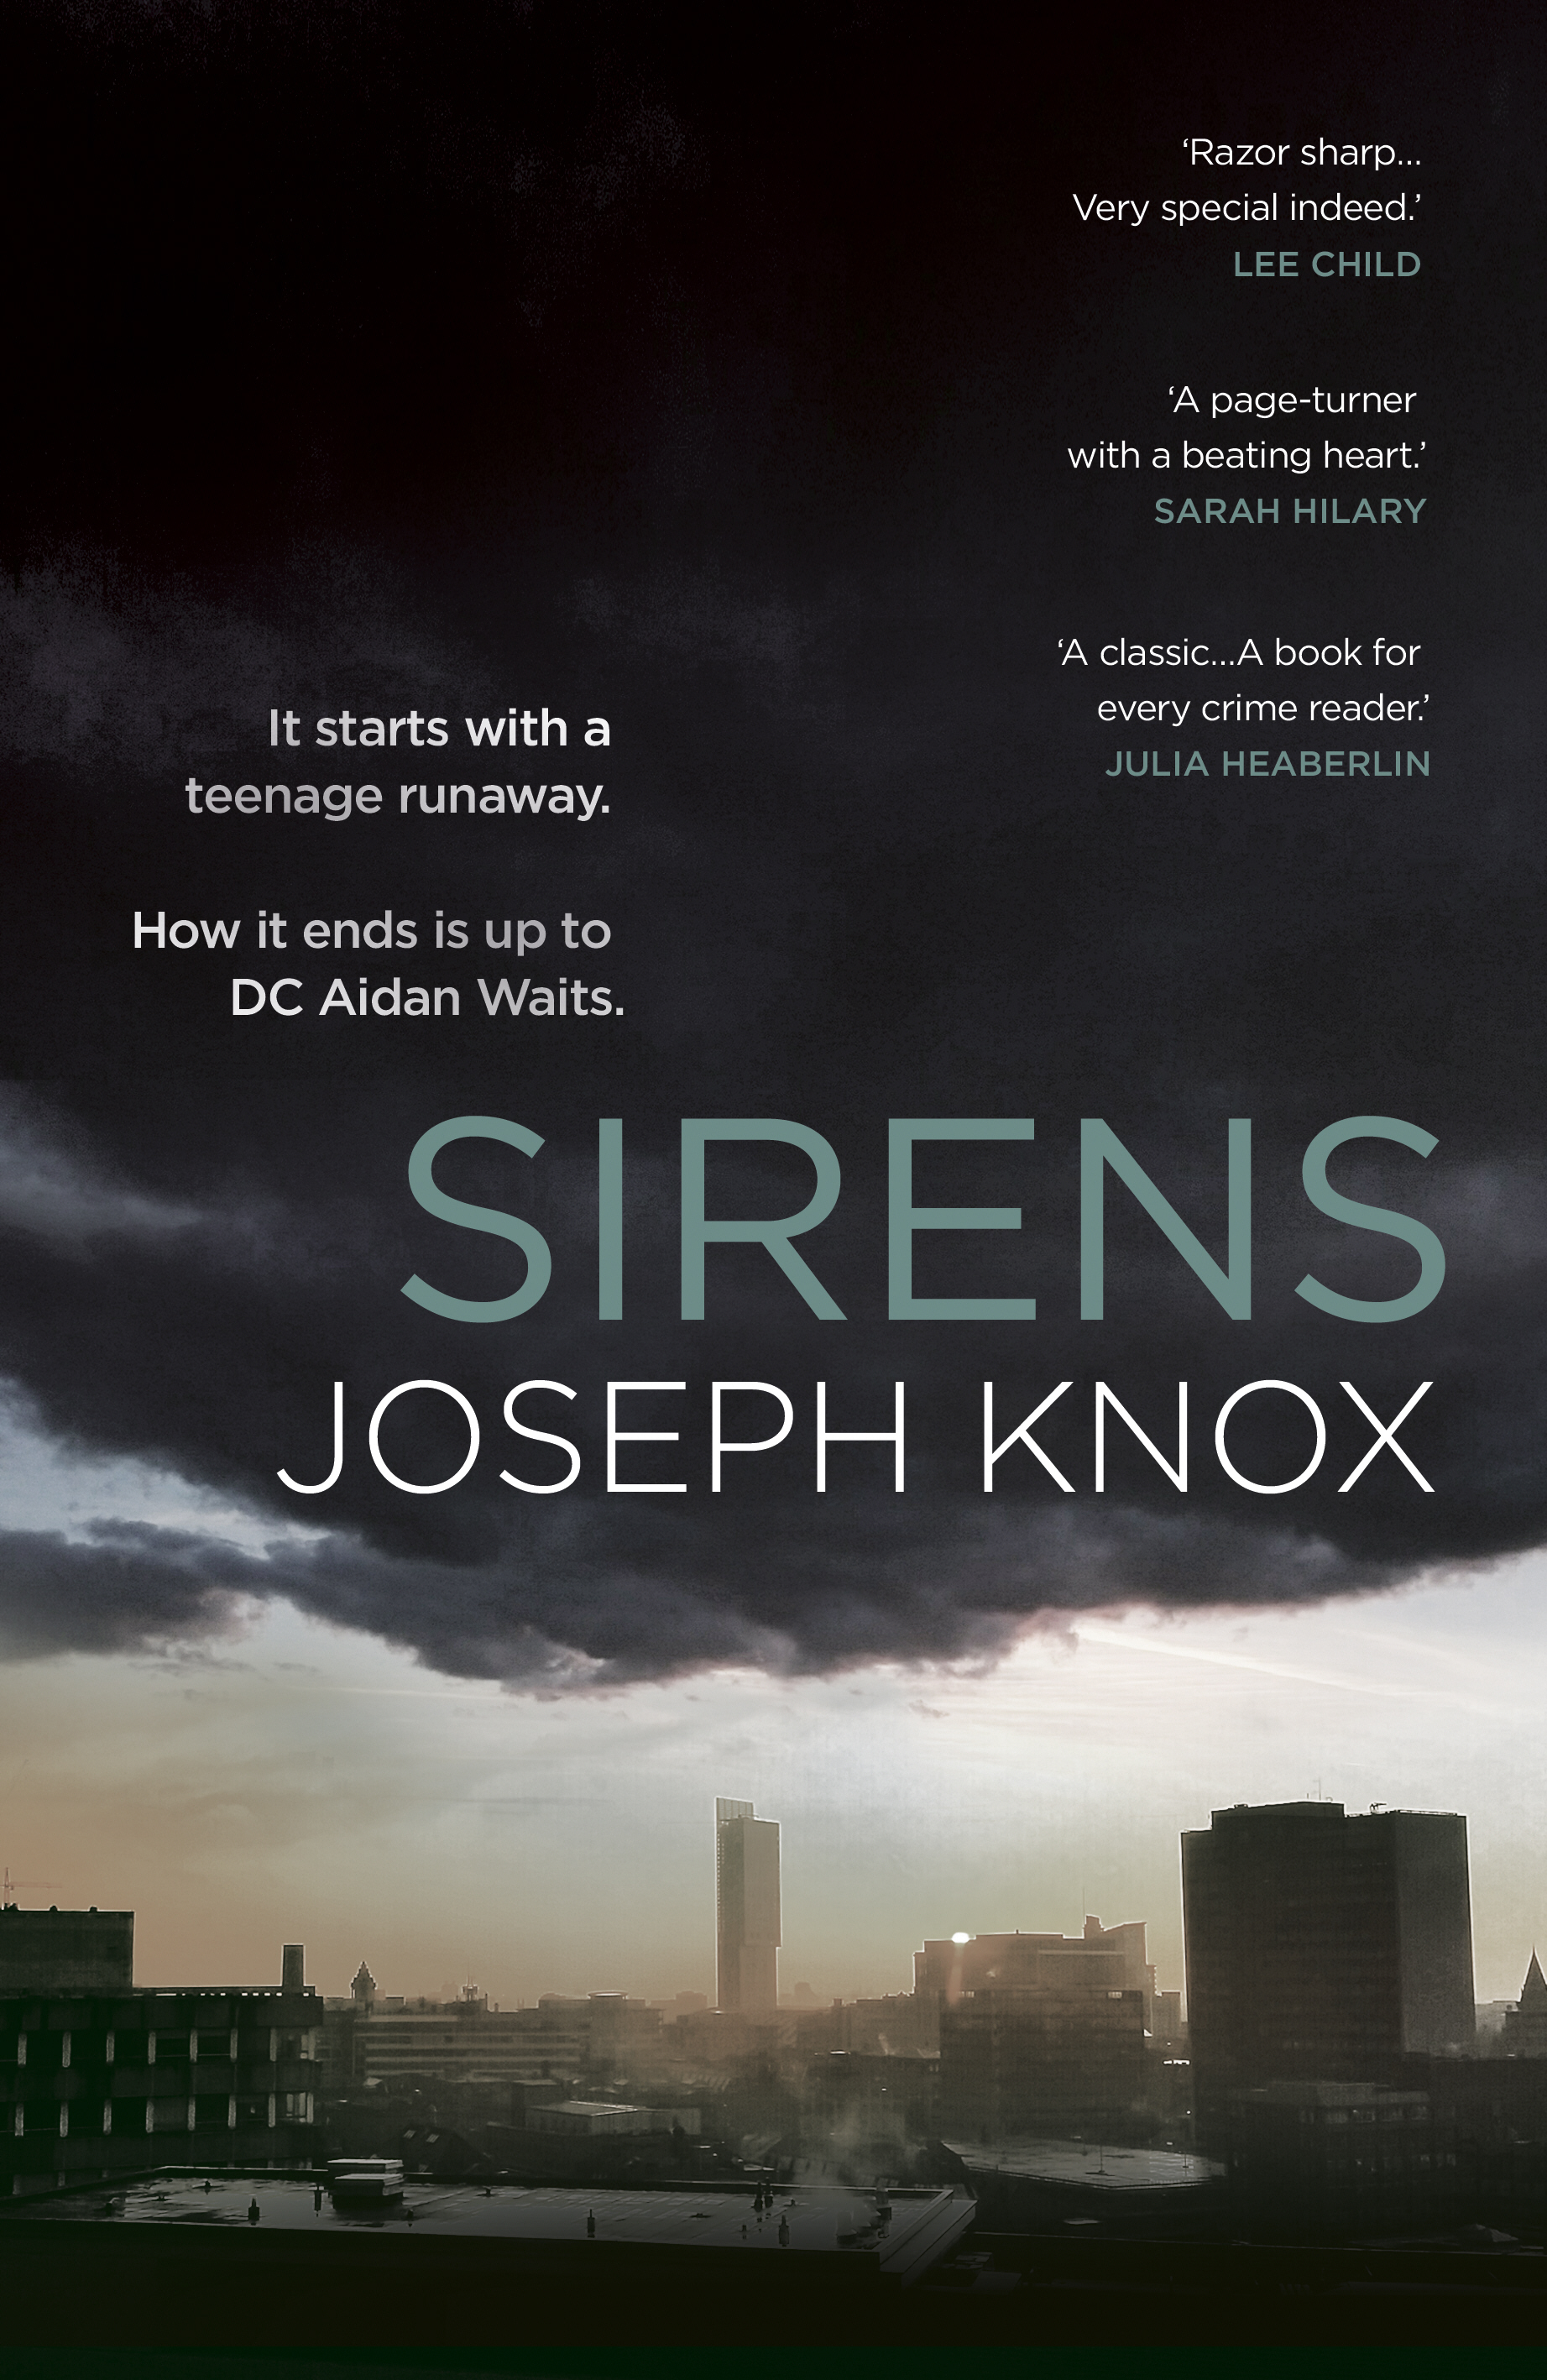 Sirens reviewed: - 'Razor-sharp urban noir – very special indeed.' (Lee Child)'Thrilling, breathless stuff.' (The Observer)'Sirens immediately feels like a classic, not a debut . . . a book for every crime fan.' (Julia Heaberlin, author of Black Eyed Susans)'Sirens is the best British crime debut of the last five years.' (Crimescene Magazine)'Sirens is a powerhouse of noir. Joseph Knox owns Manchester and paints it in all its grimy colours.' (Val McDermid)'Manchester throbs with lowlife in this startling debut . . . a page-turner with a beating heart. I loved it.' (Sarah Hilary)'Knox presents the city as pungently and uncompromisingly as Ian Rankin does Edinburgh.' (The Guardian)'A firecracker of a crime tale. His writing is taut, atmospheric and studded with eye-catching descriptions. An arresting new talent.' (Metro)